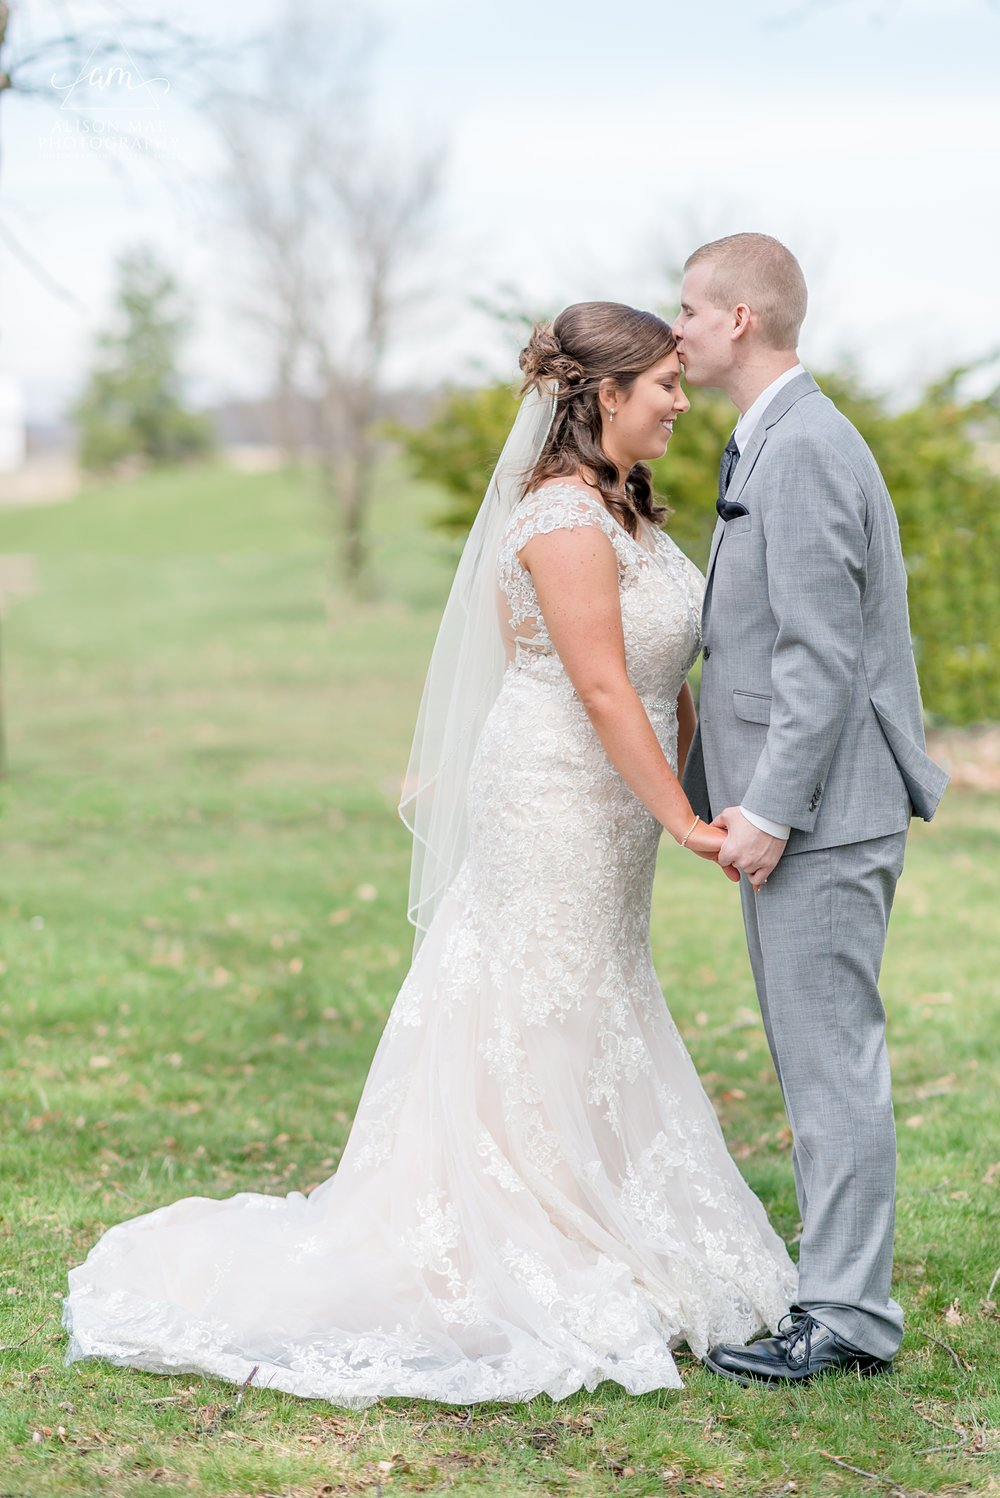 Fun Colorful Joyful Indiana Wedding Photographer - Indianapolis - Alison Mae Photography_4486.jpg